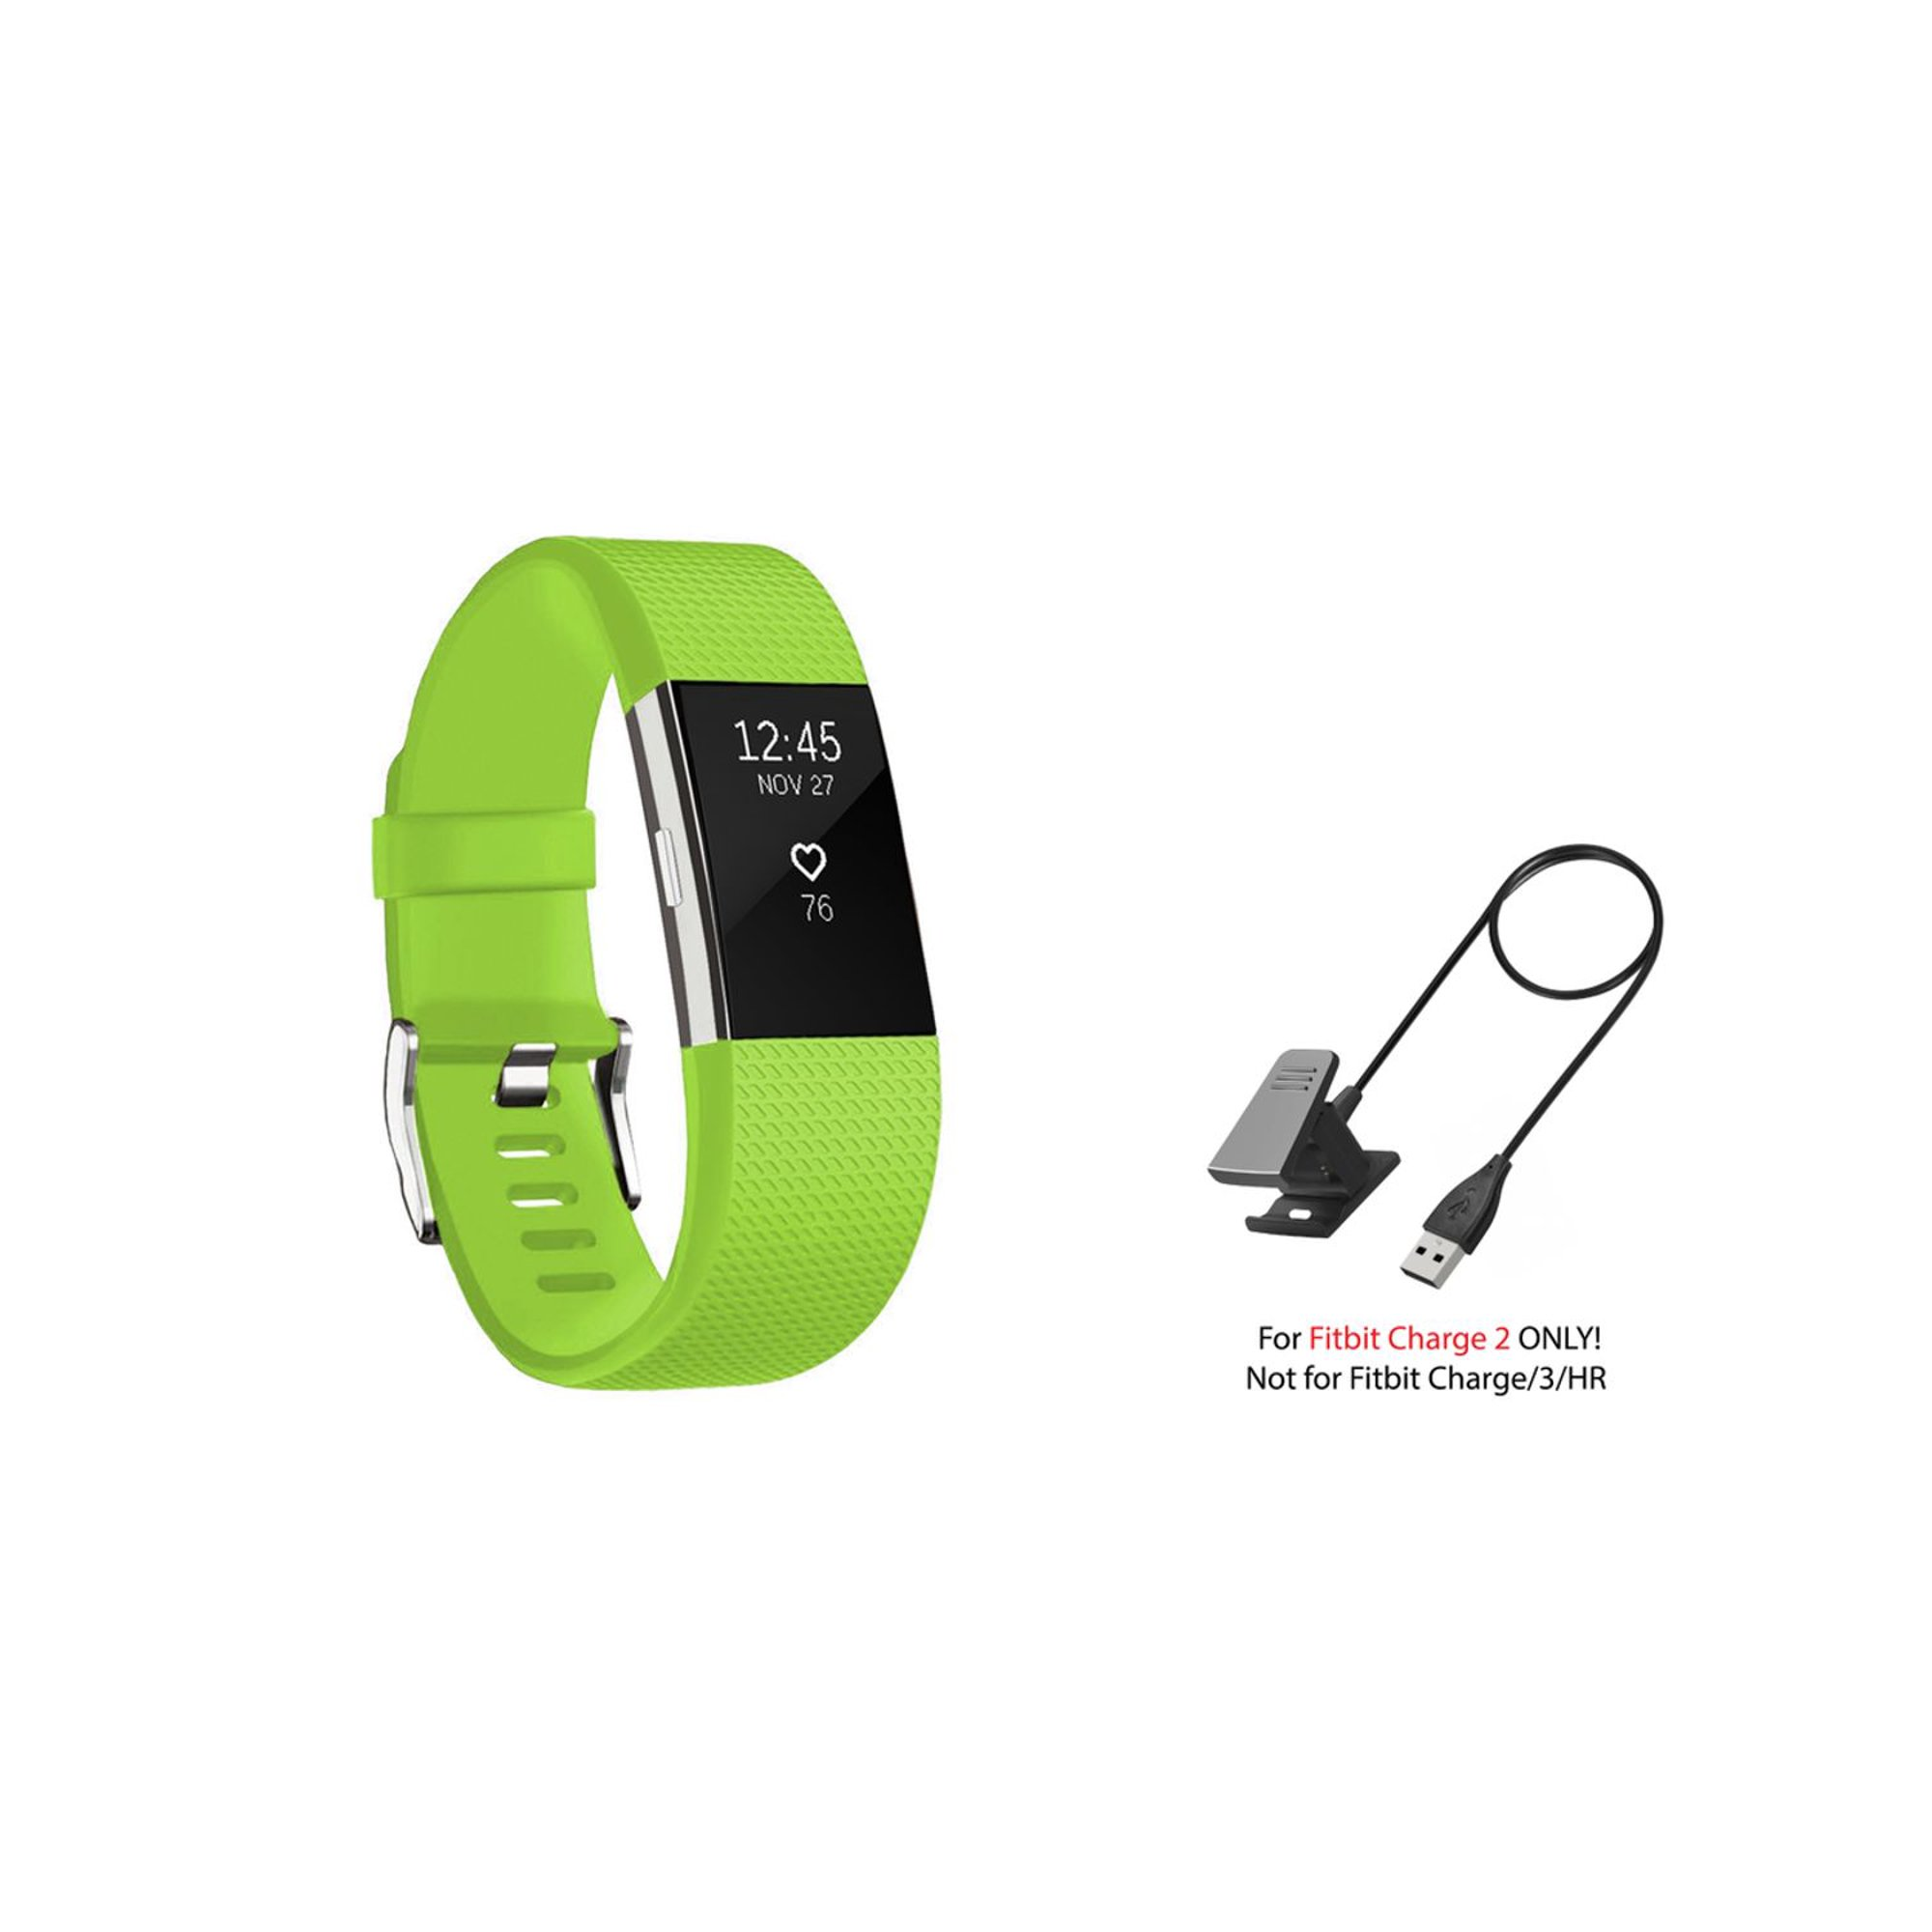 Fitness Tech StrapsCo Replacement Charger for Fitbit Alta HR